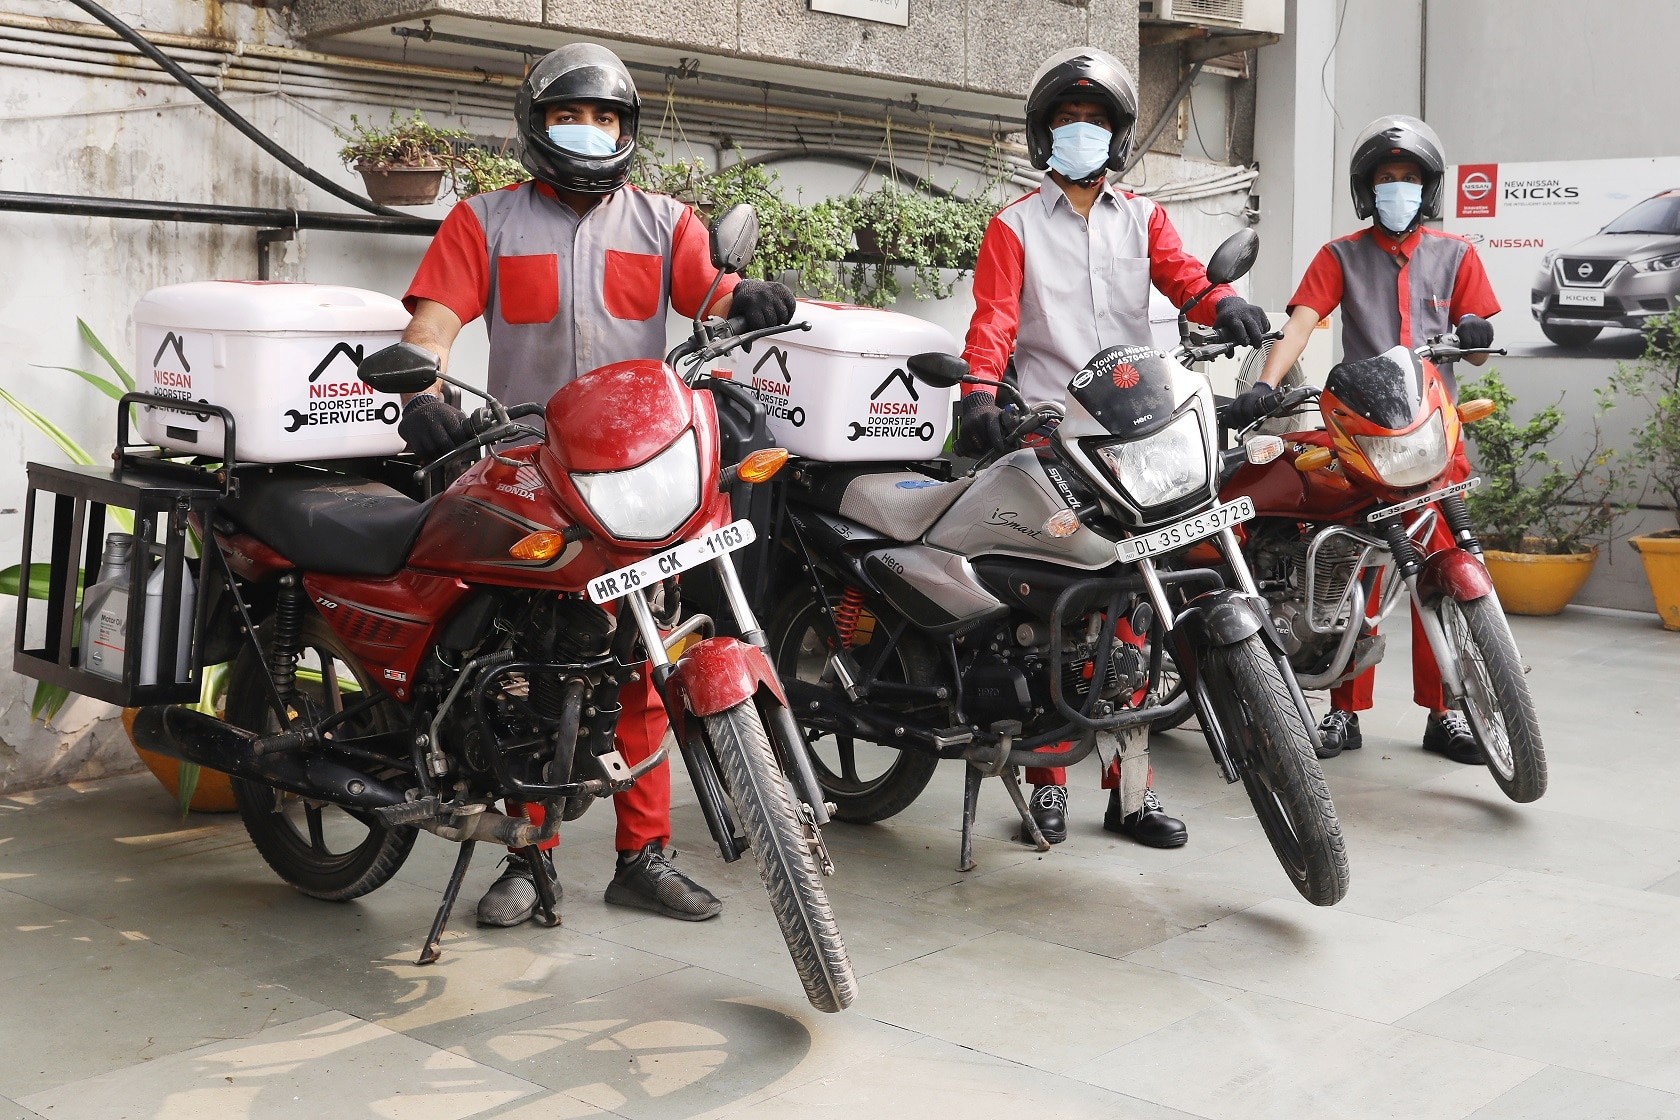 Nissan India service reach motorcycle at home